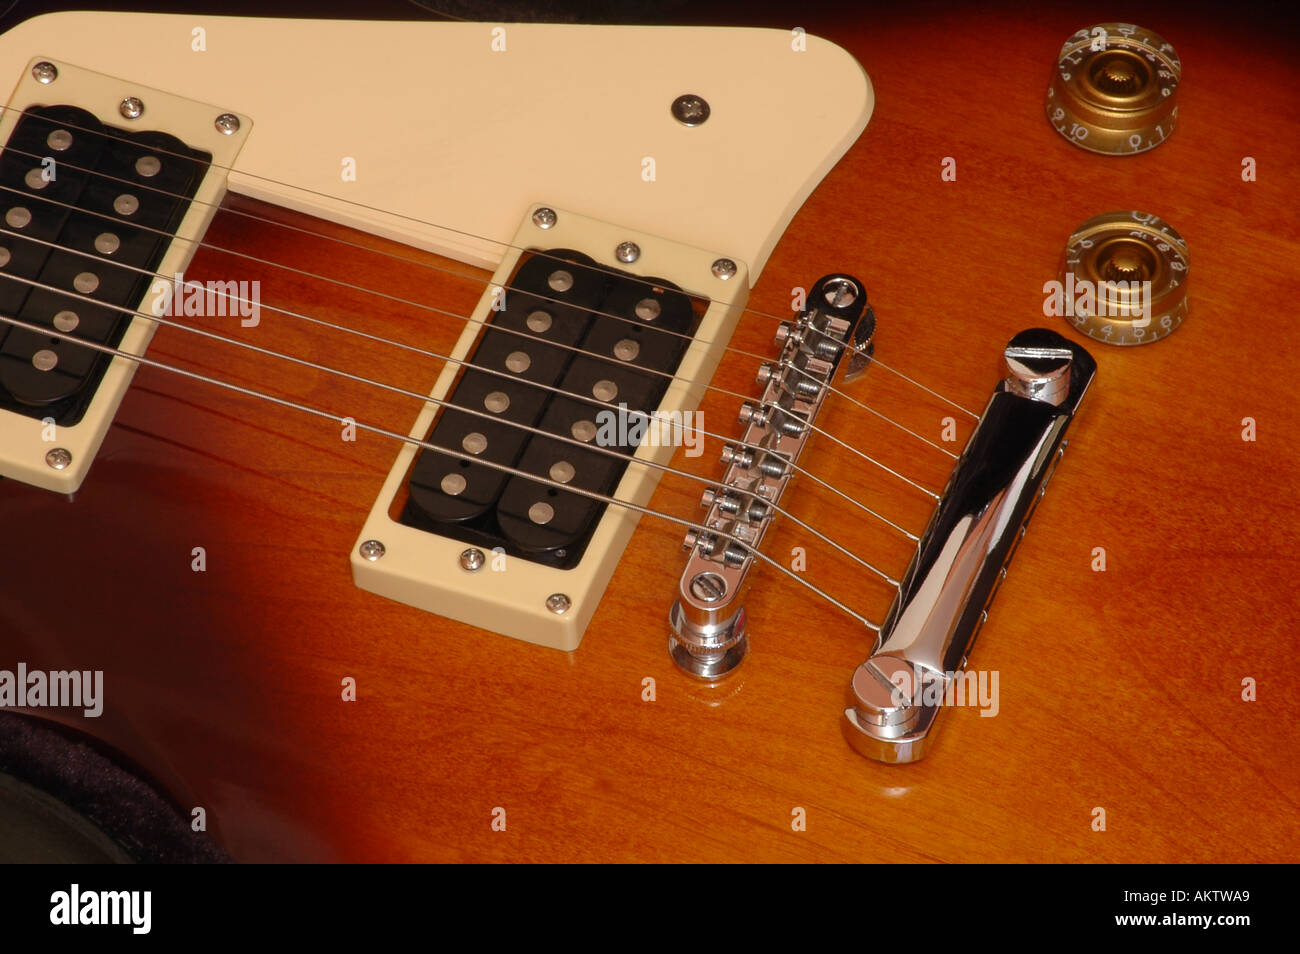 Close Up View Of Pick Ups And Bridge From A Gibson Epiphone Les Paul